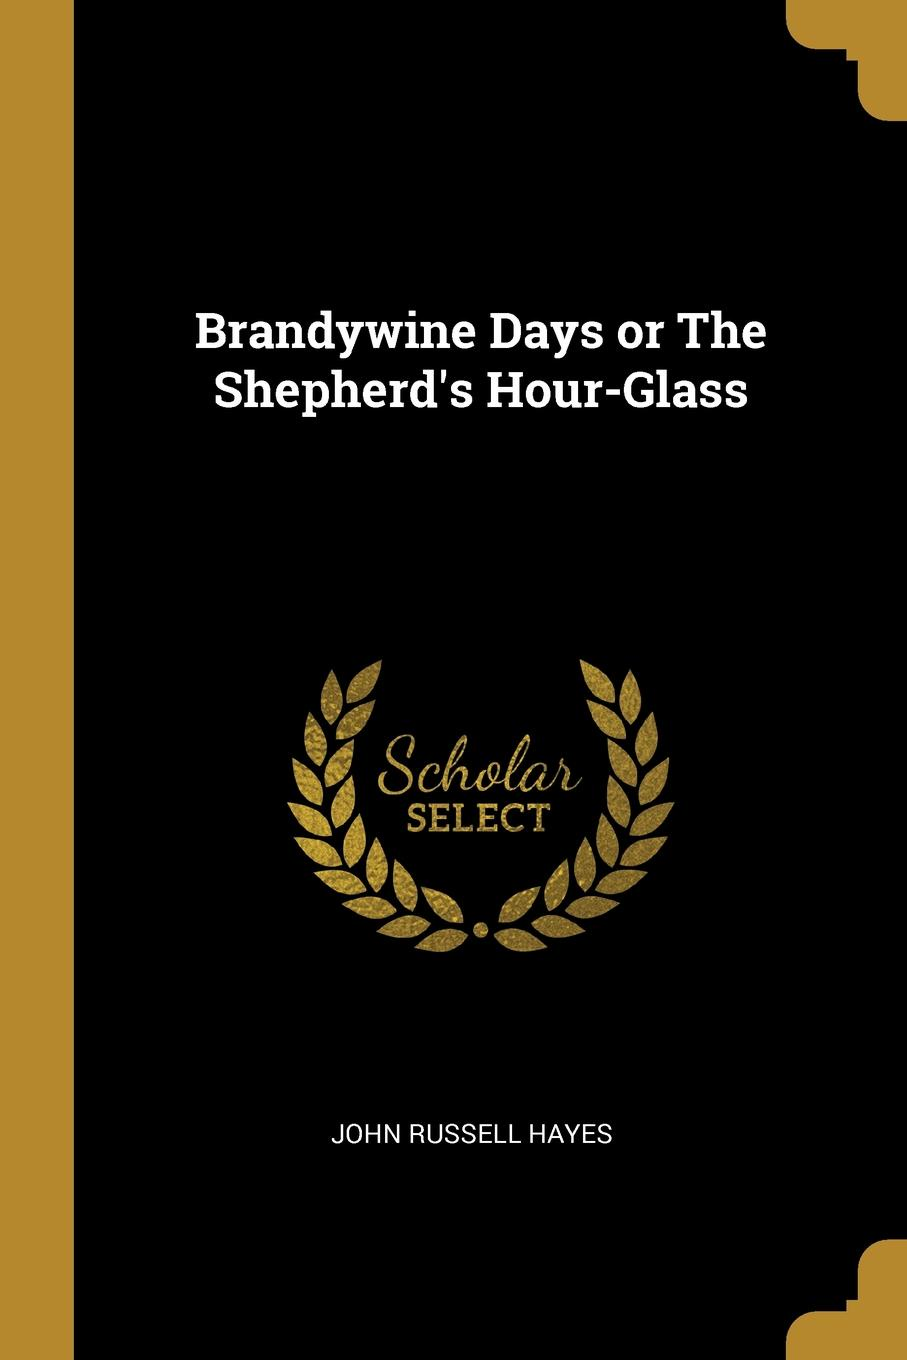 John Russell Hayes. Brandywine Days or The Shepherd.s Hour-Glass